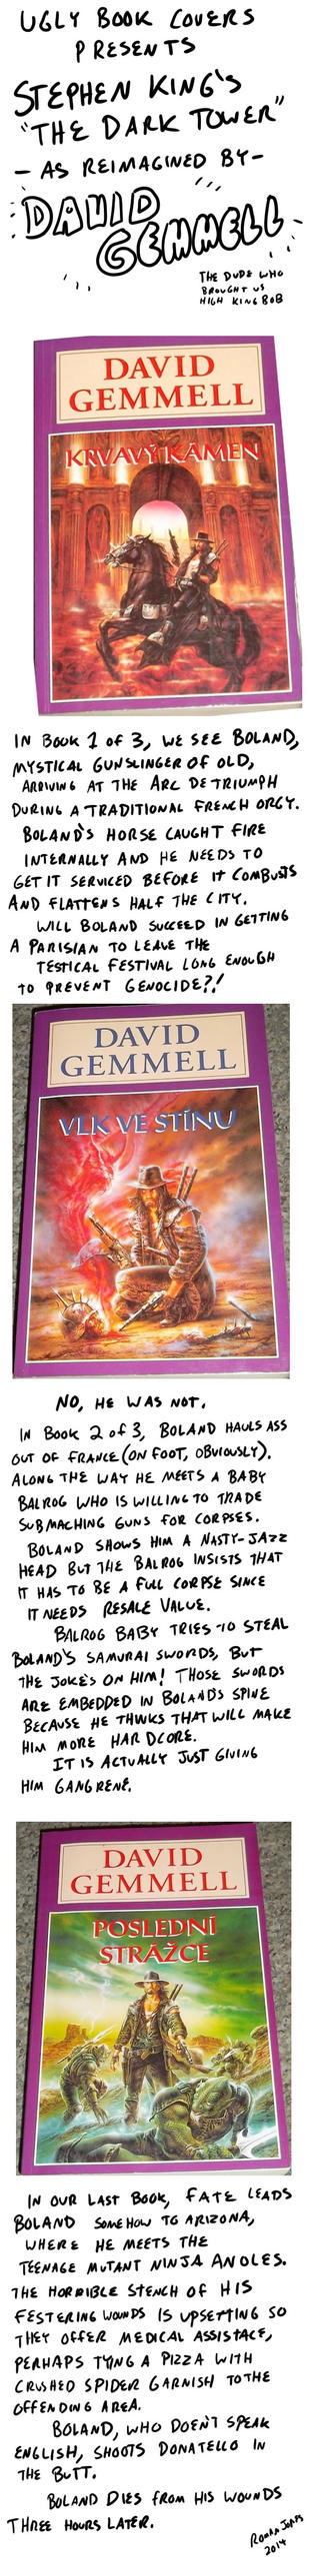 Ugly Book Cover Art : Ugly book covers boland the gunslinger by romanjones on